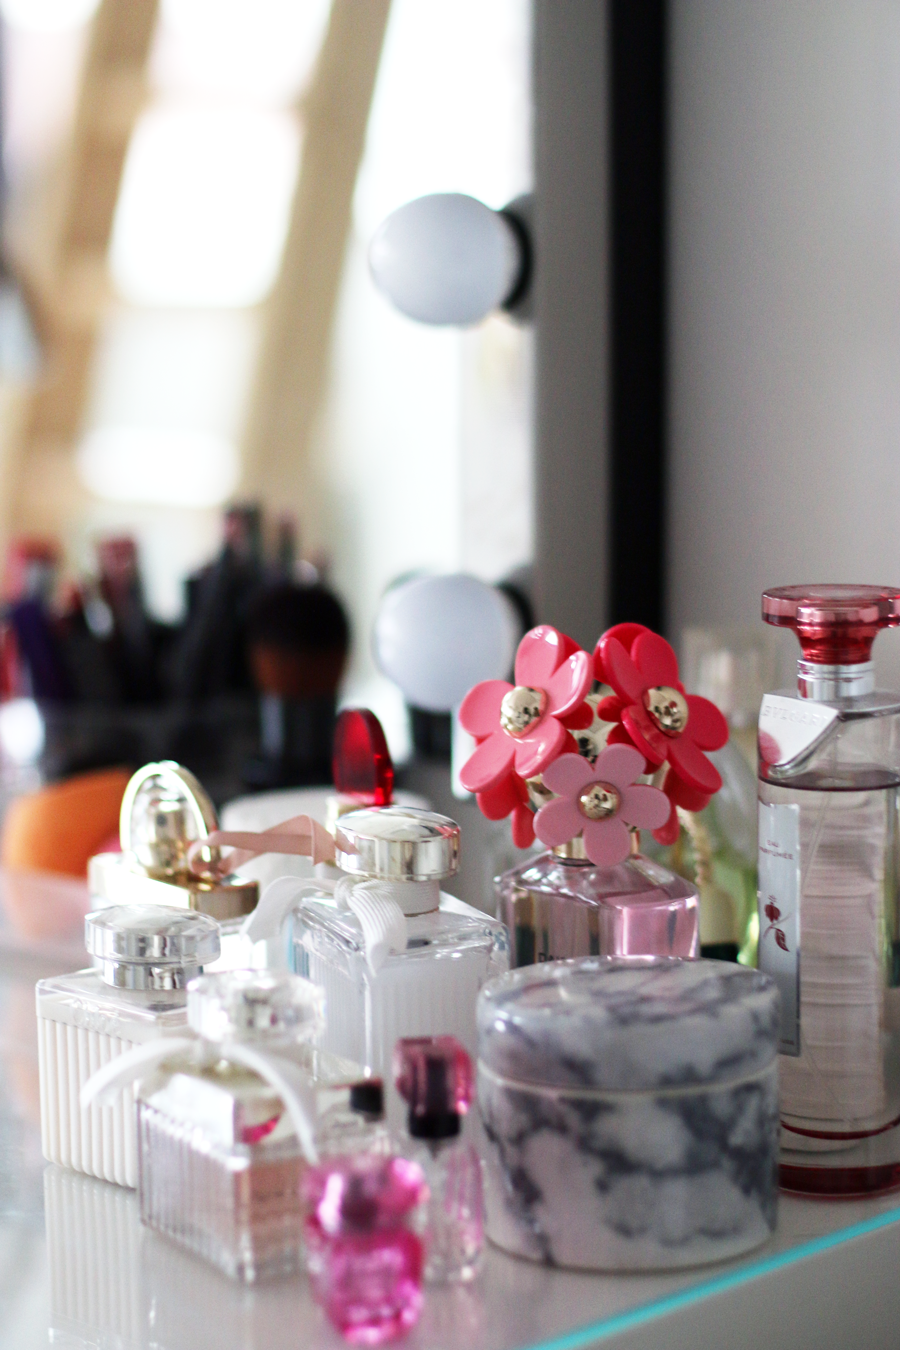 Interior Updated Make Up Vanity Tour Lily Like